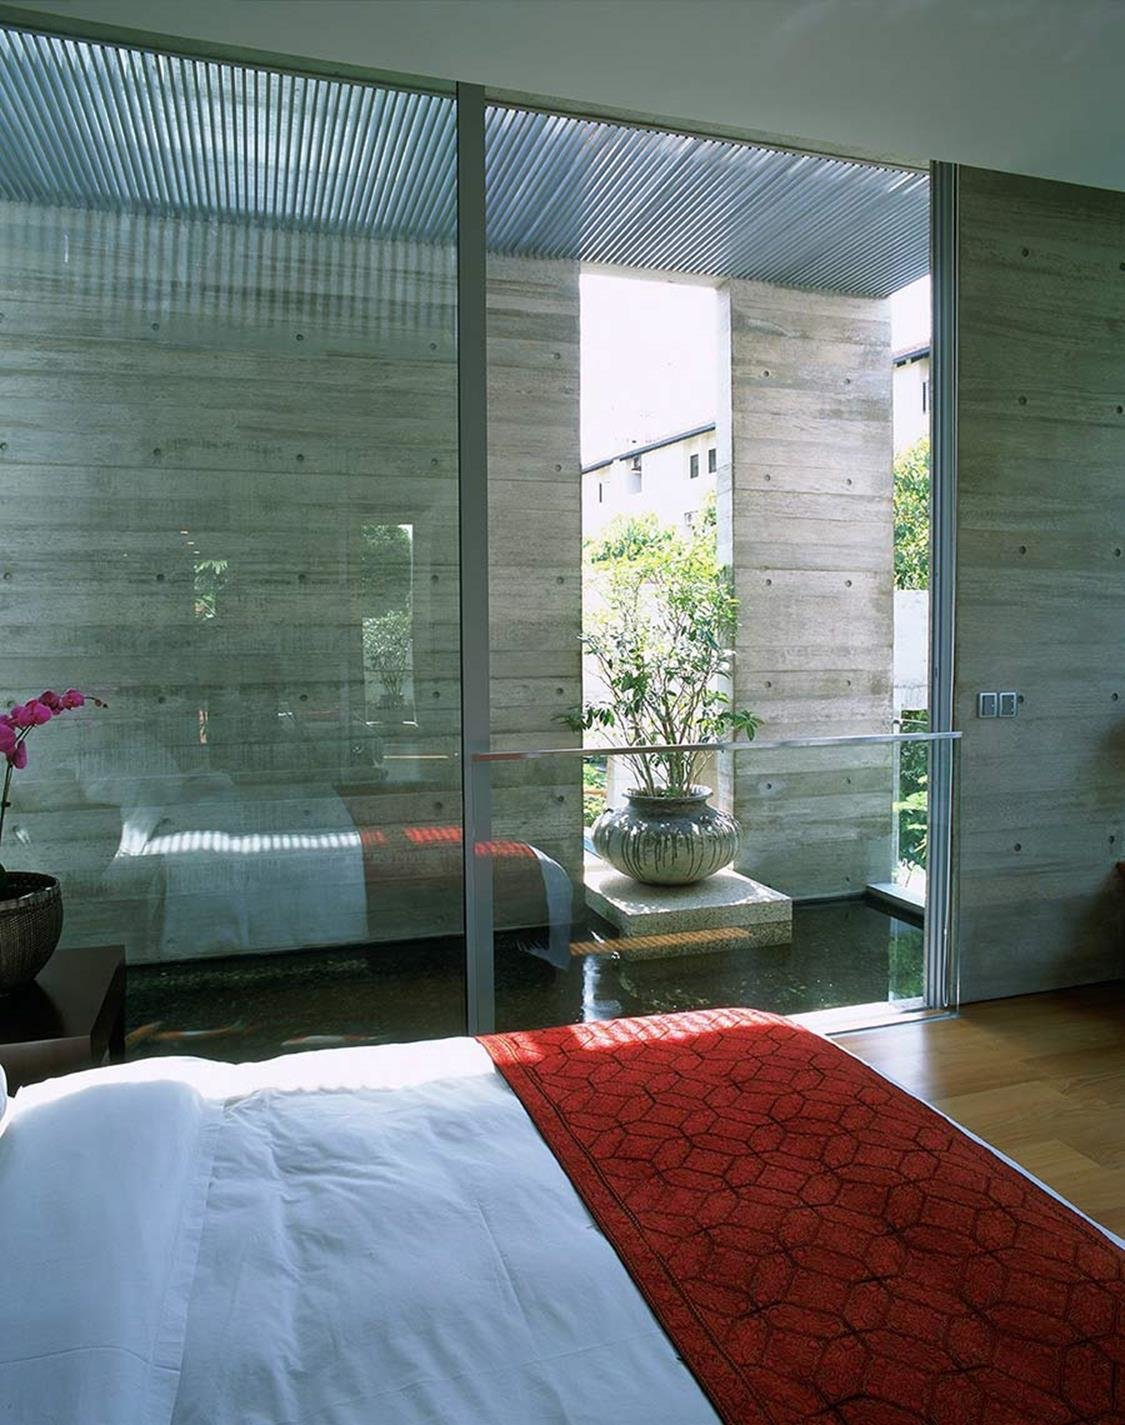 Best Bedroom And Outdoor Water Fountain Ideas 21 Viralinspirations With Pictures